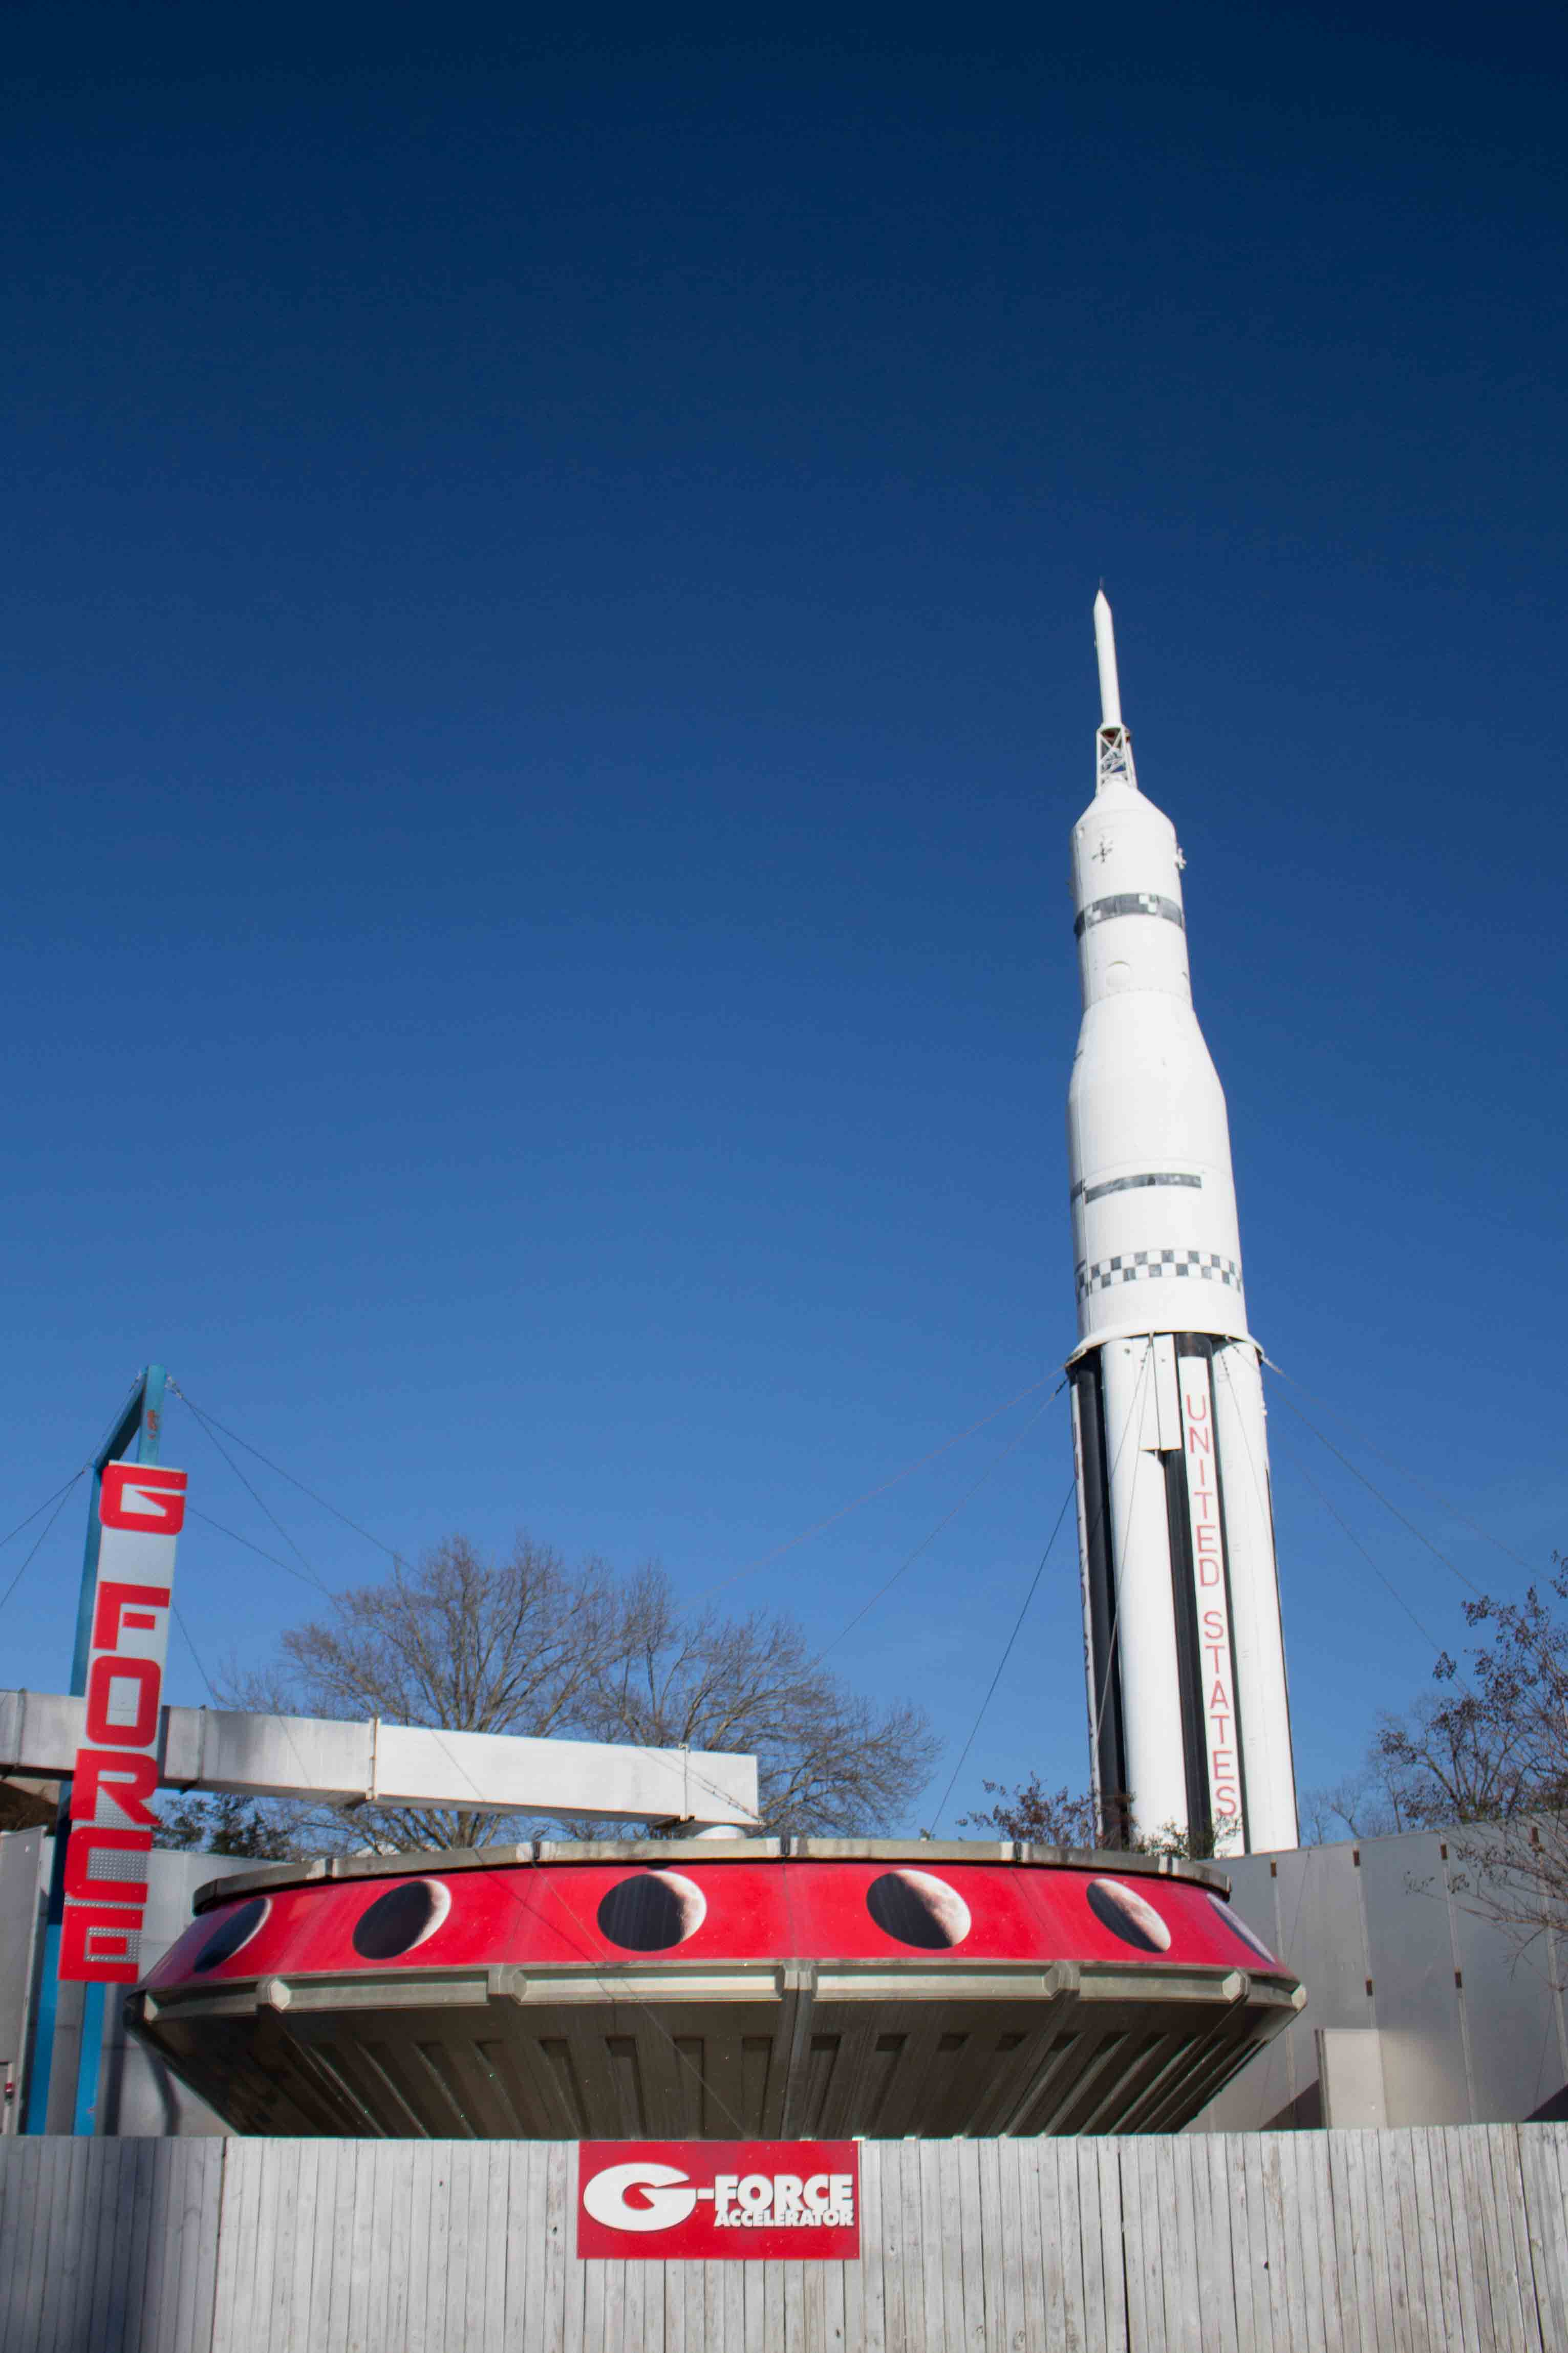 Nerding out on rockets at the Huntsville Space & Rocket Center!